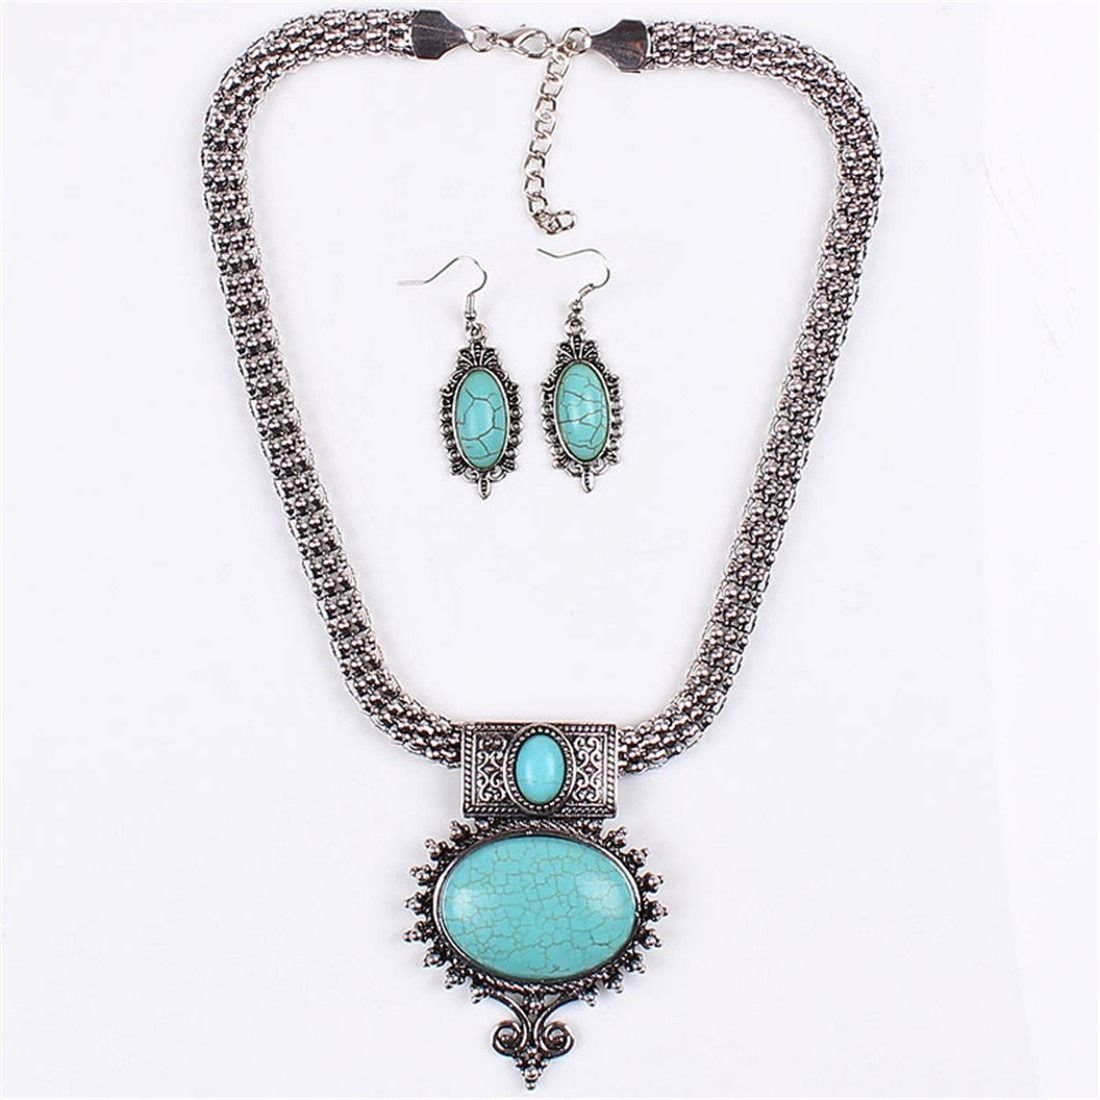 Tibet Silver & Blue Turquoise Necklace Set - 2